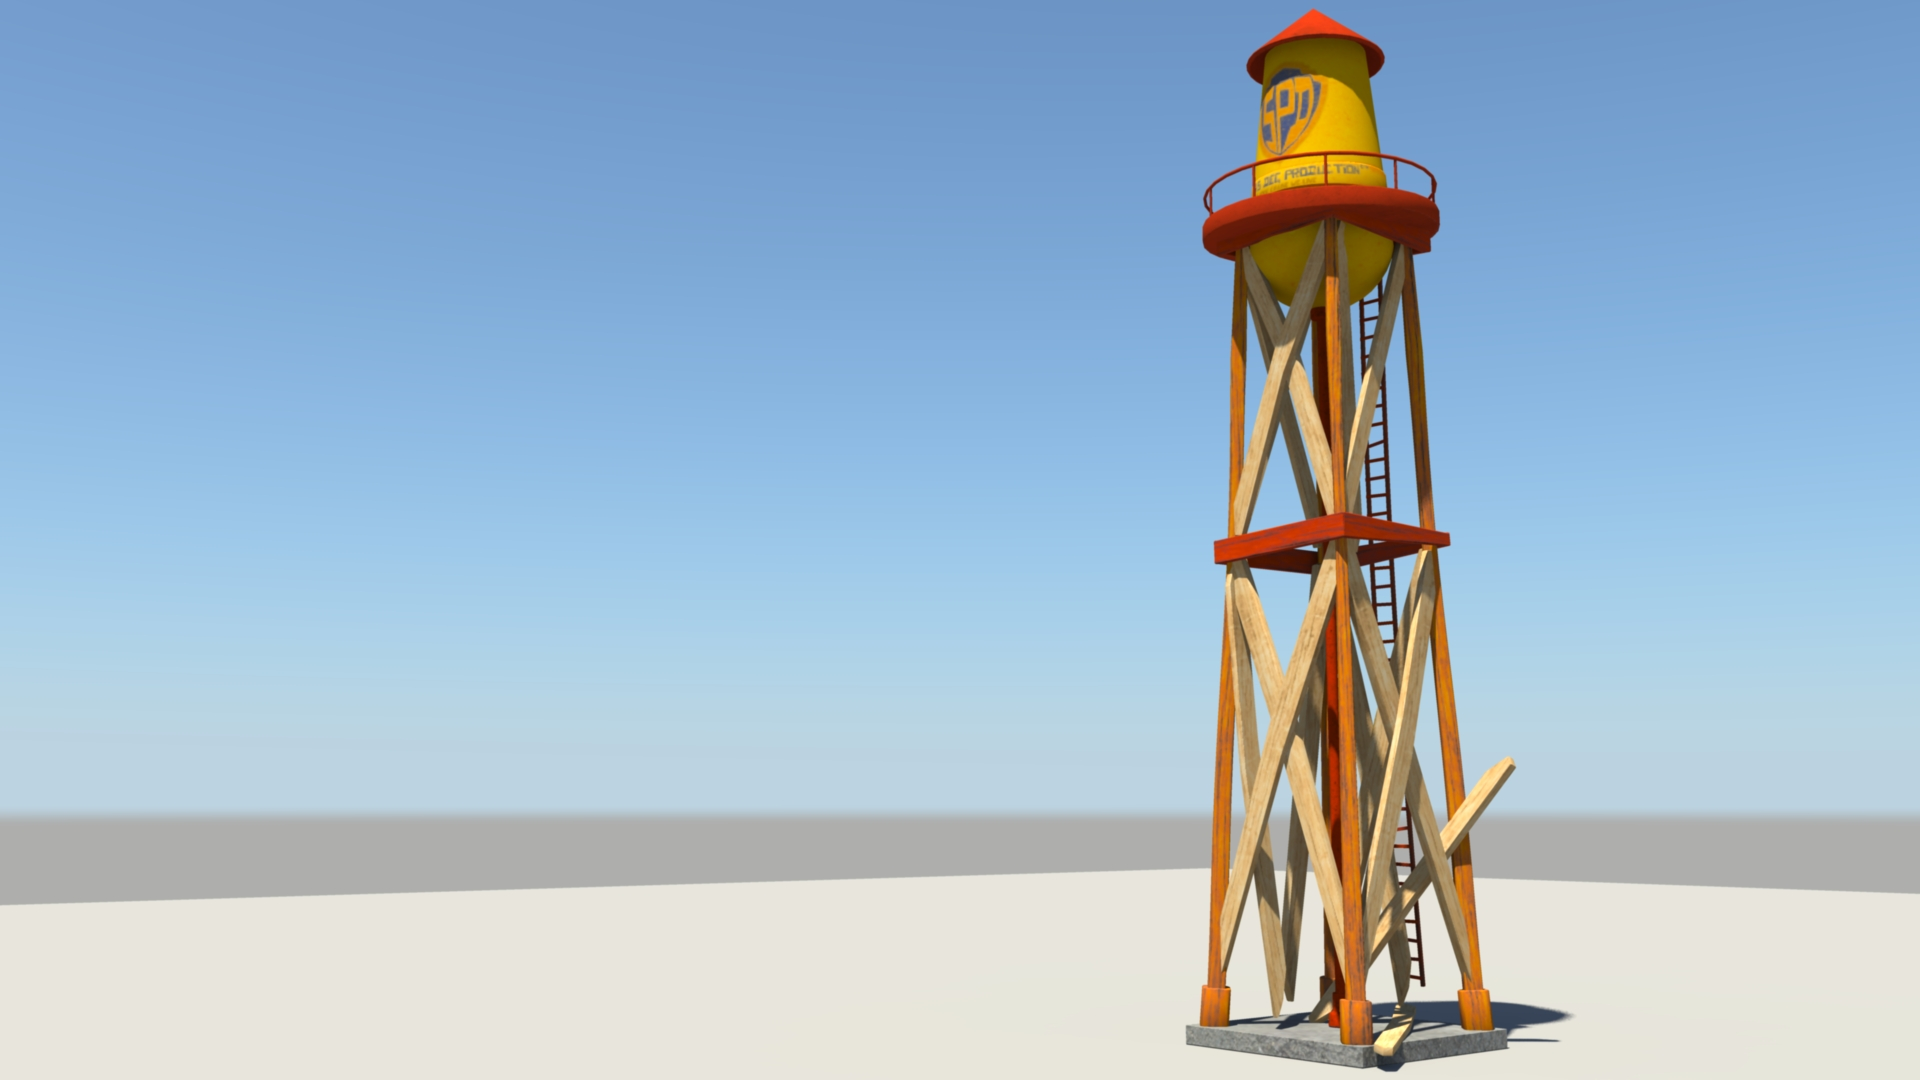 water tower.jpeg